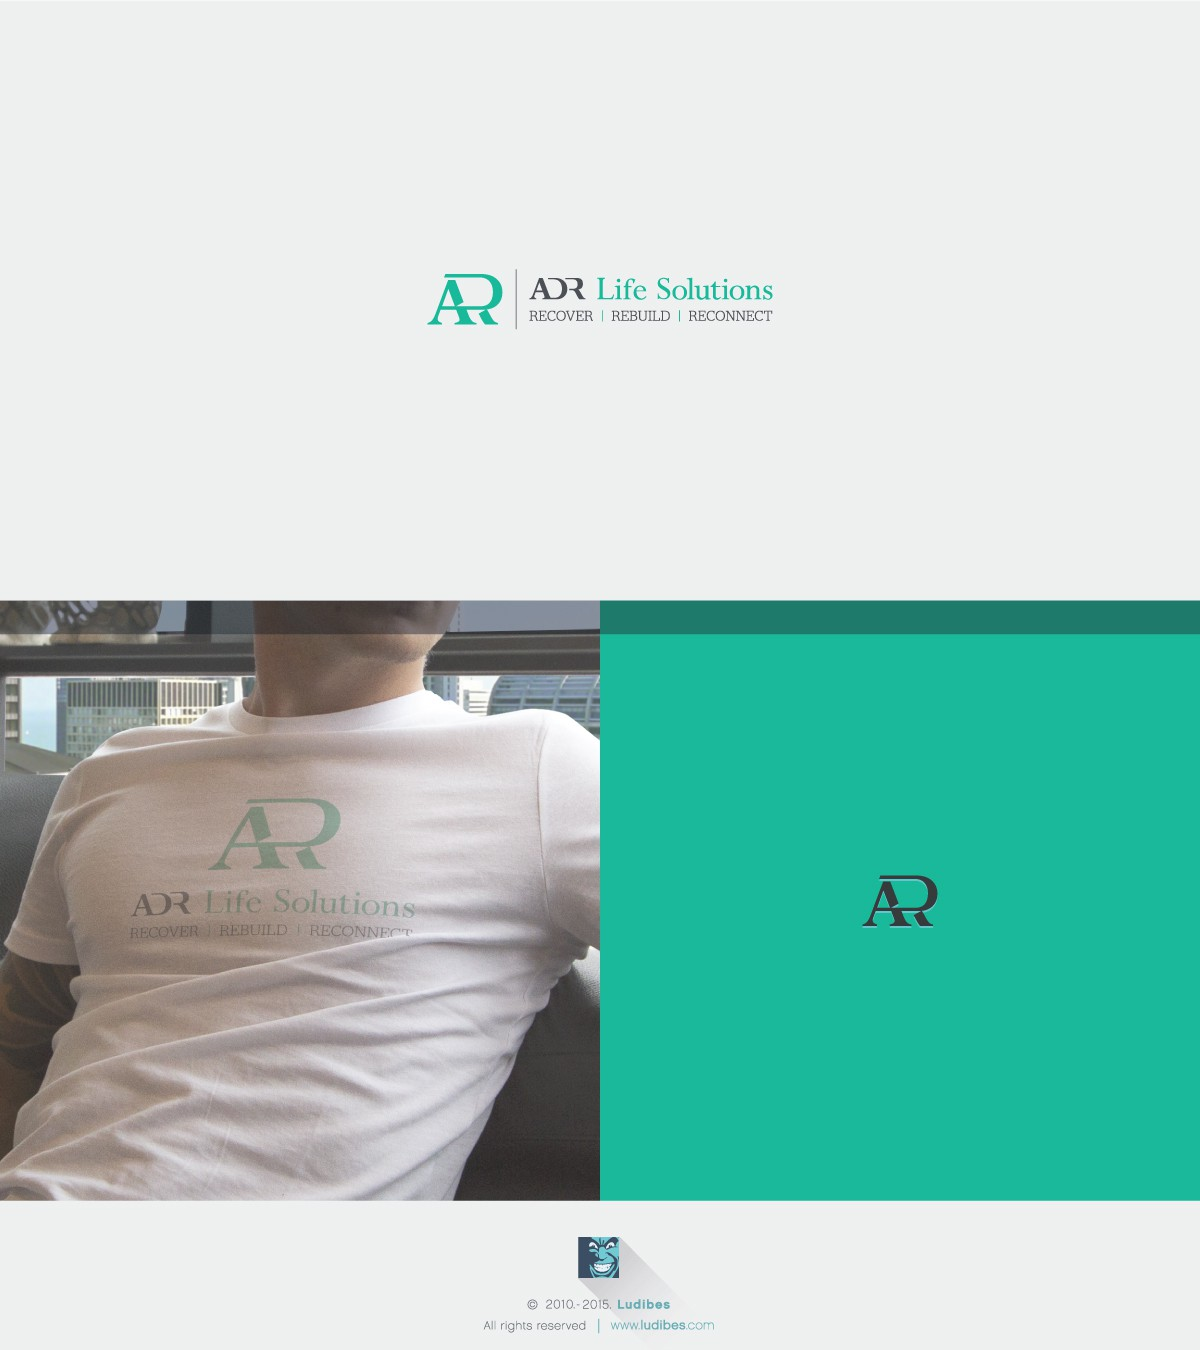 Logo Design Project for ADR Life Solutions